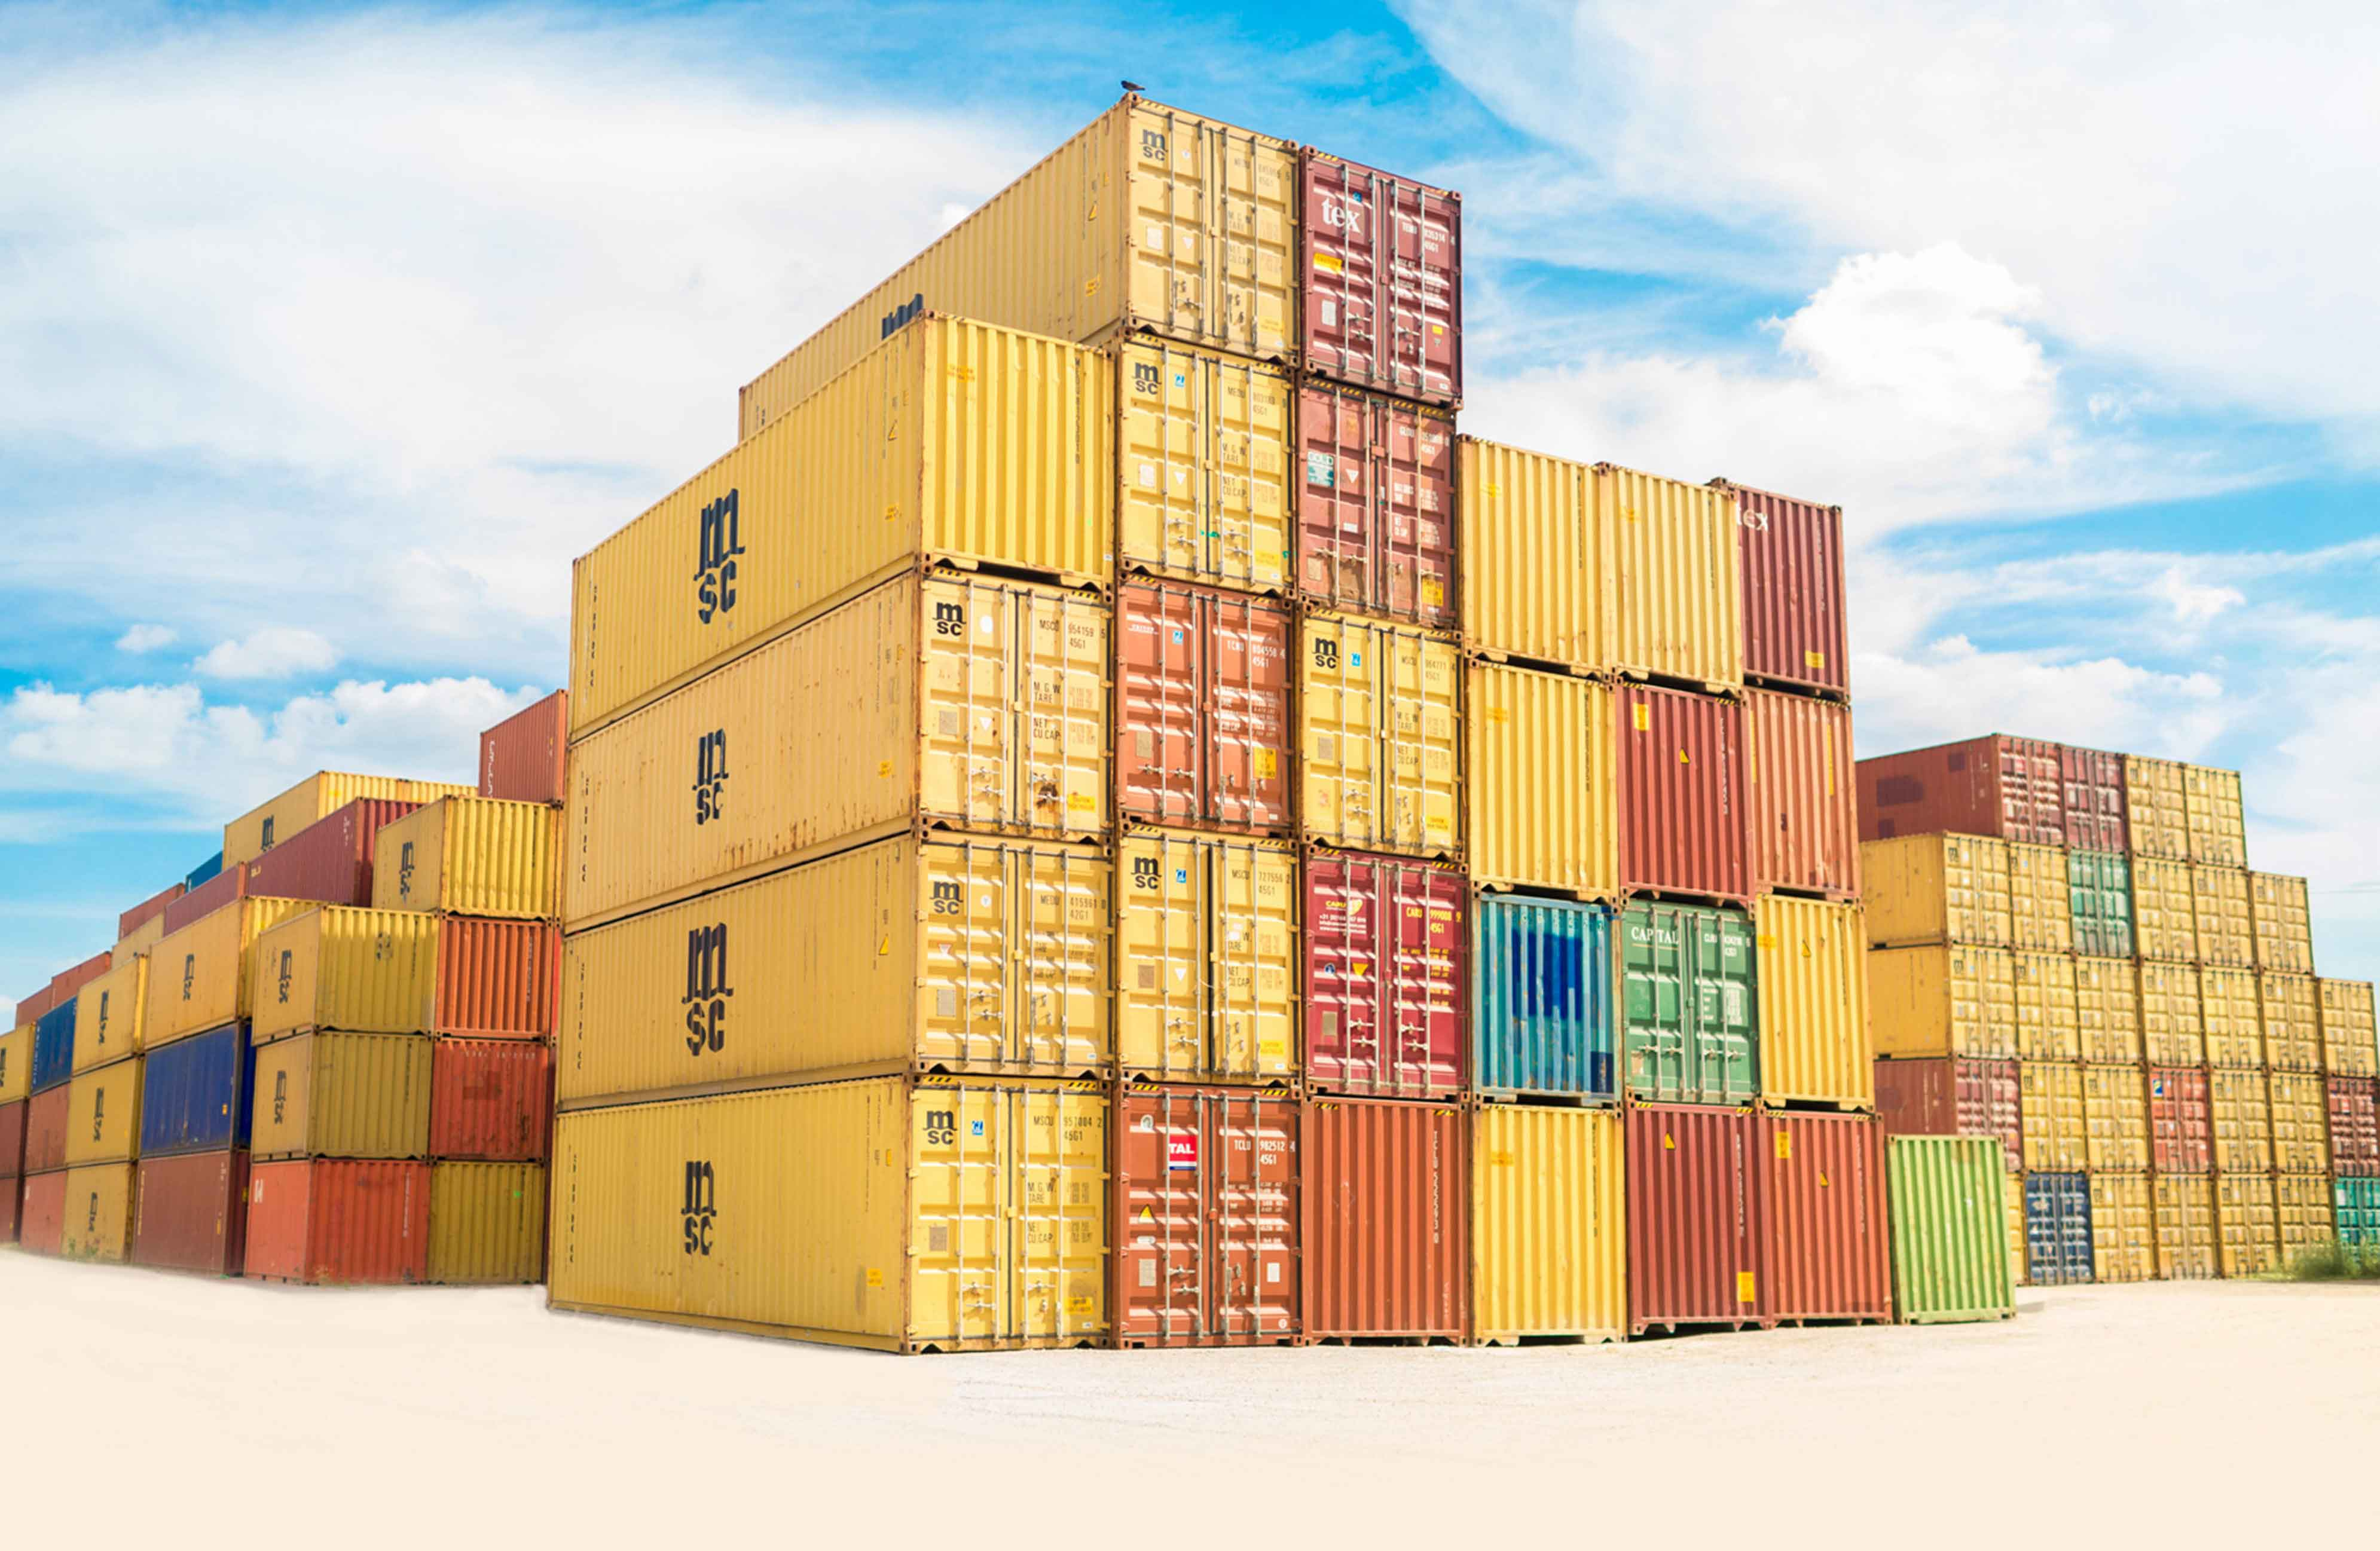 Are Shipping Containers Good for Storage?